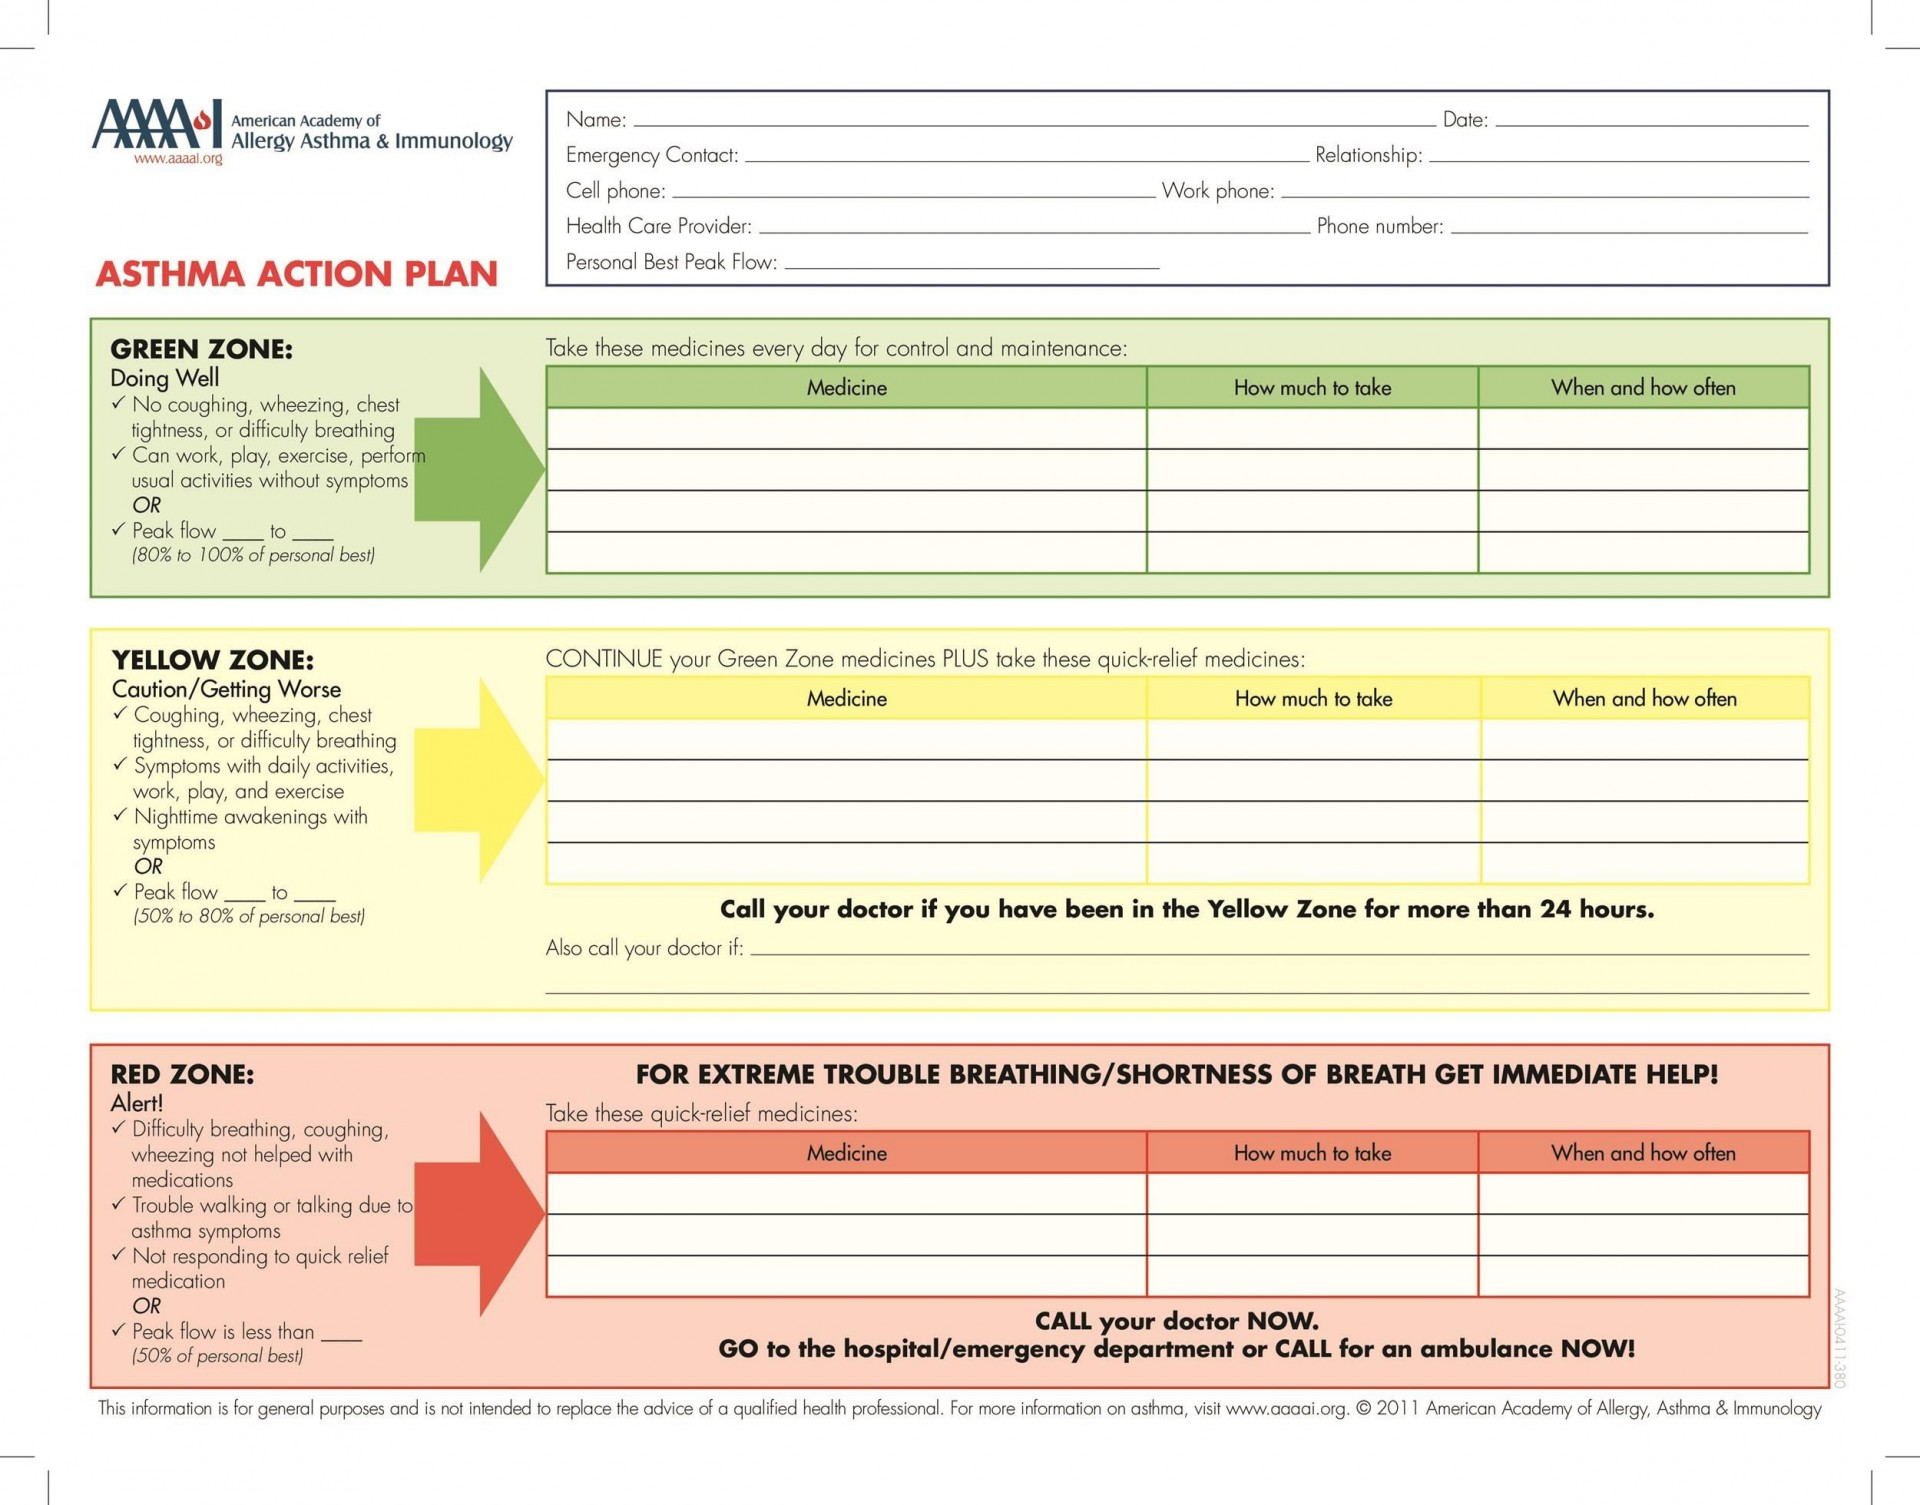 004 Staggering Corrective Action Plan Template Concept  Free Employee Word Excel Healthcare1920